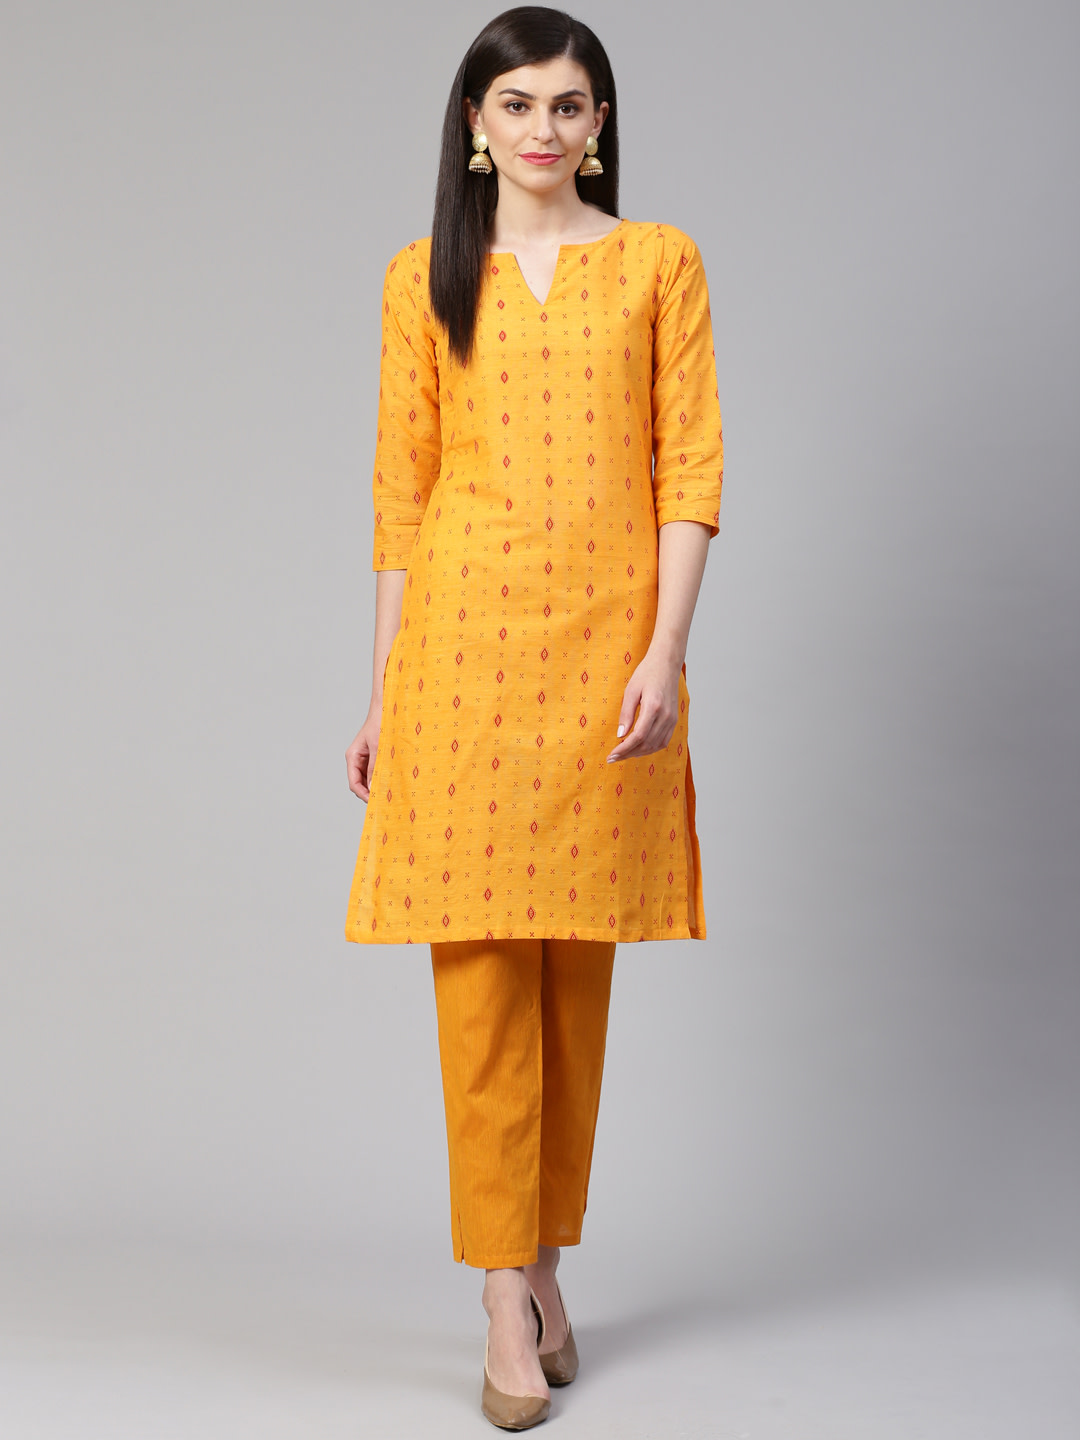 Jompers |  Jompers® Women Yellow Pure Cotton Printed Kurta with pants set